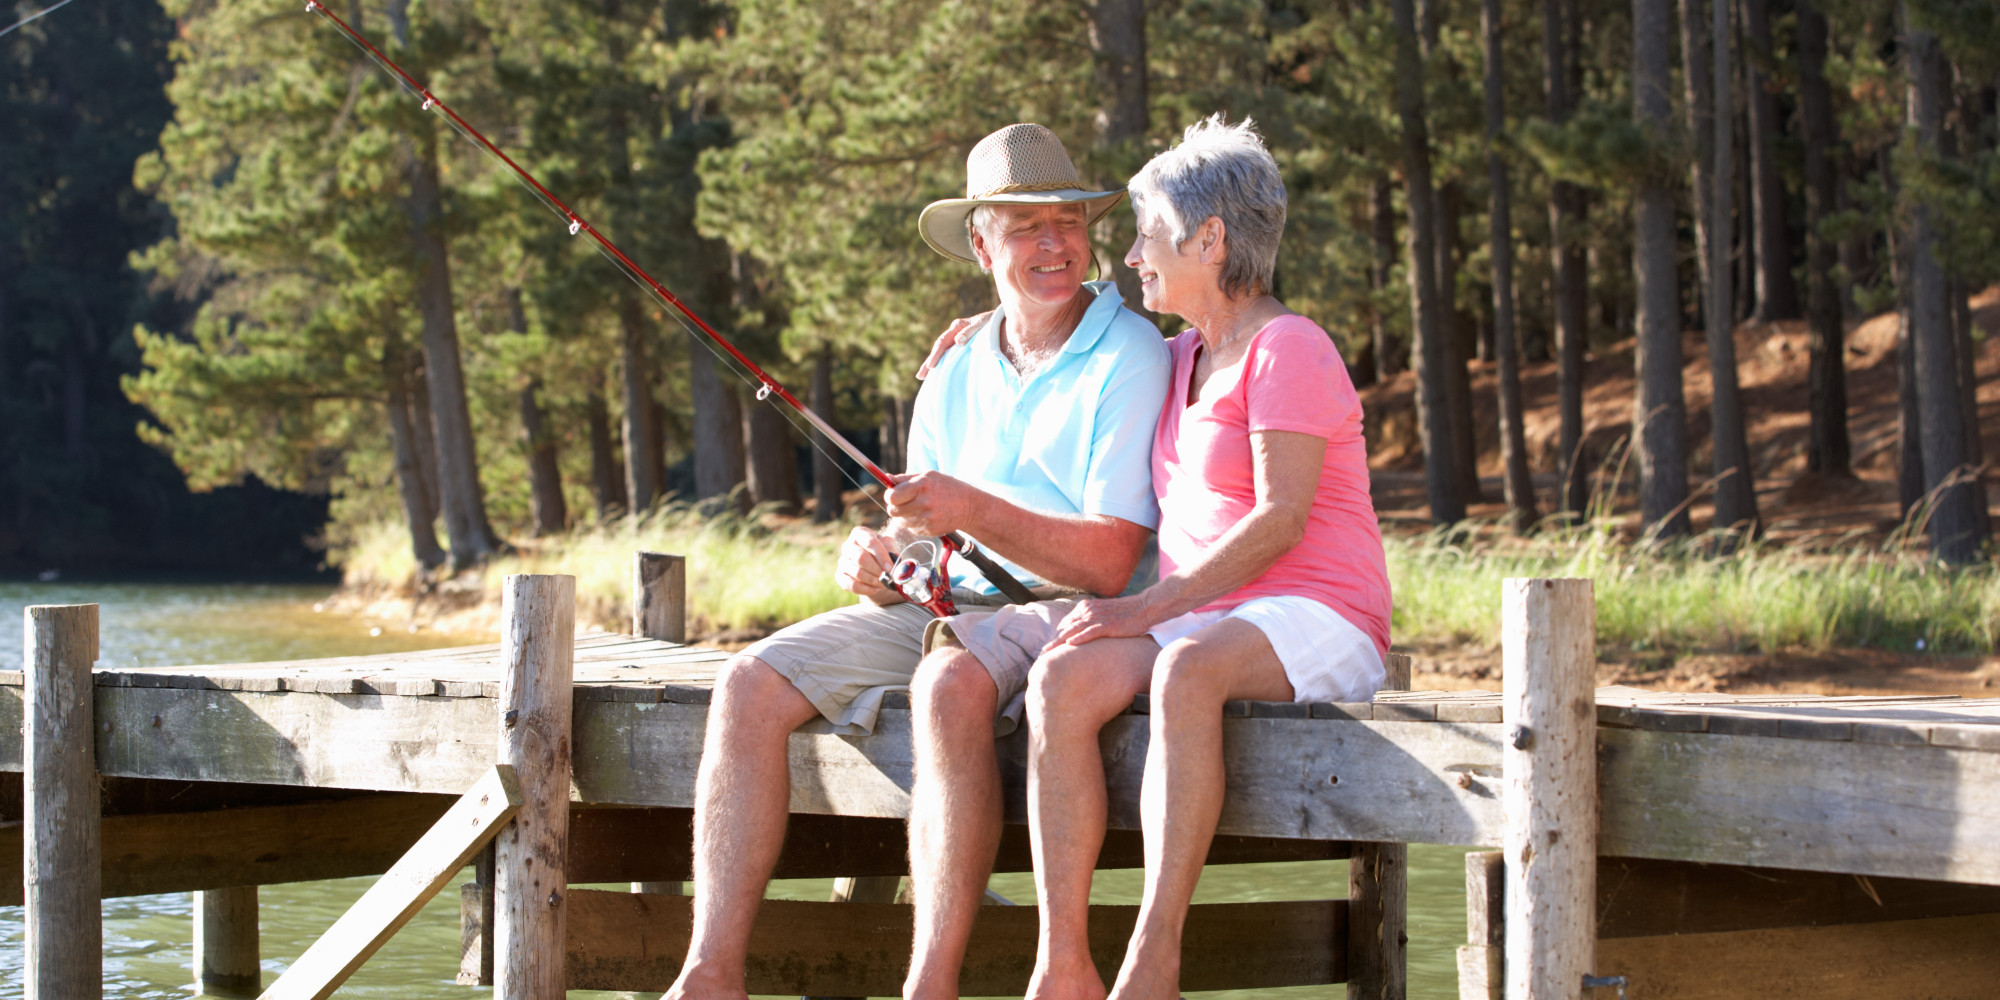 Painless ways to cut expenses in retirement